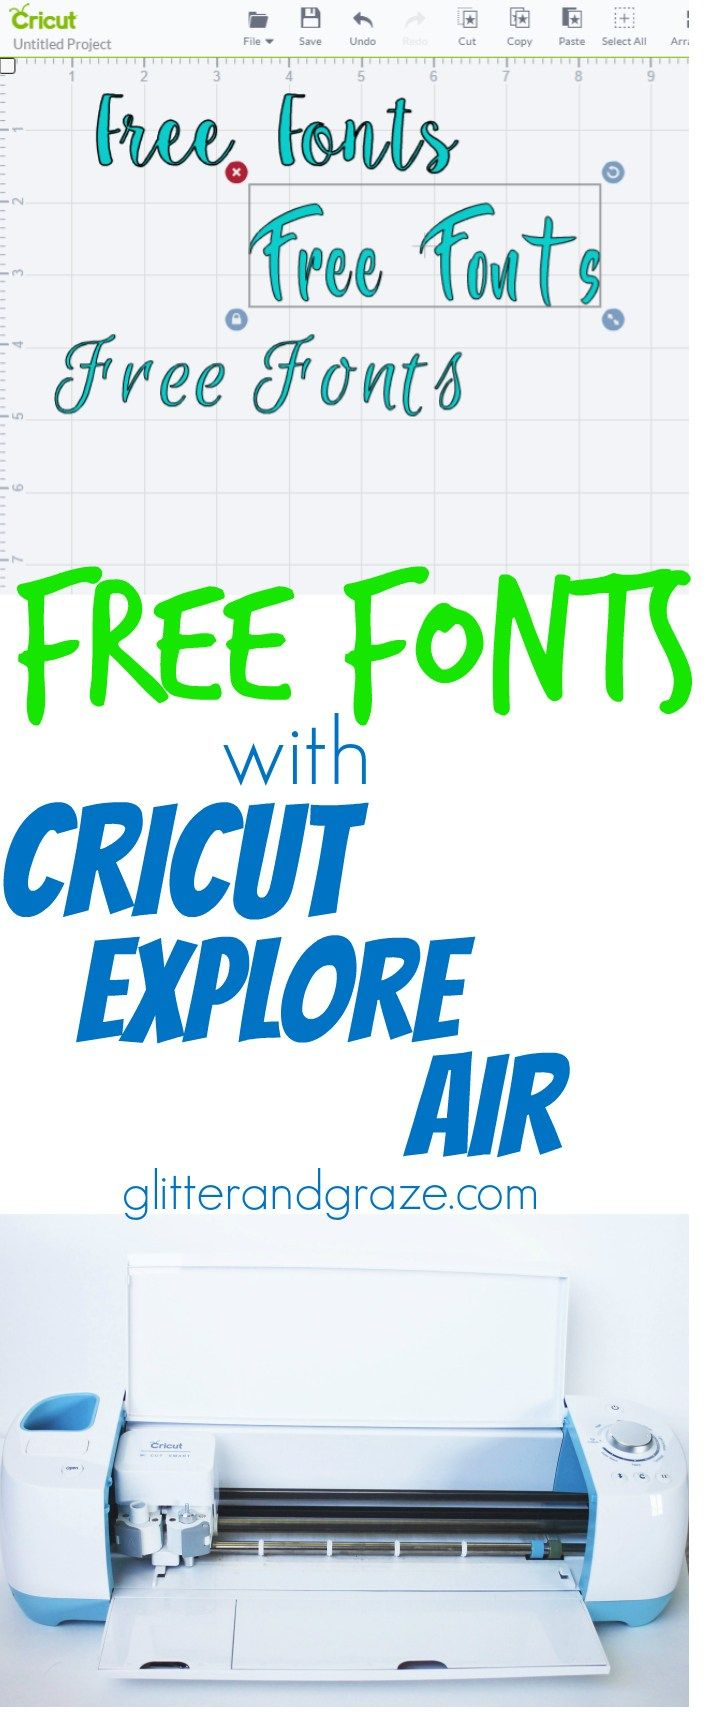 Why pay for fonts through Cricut when you can get them for